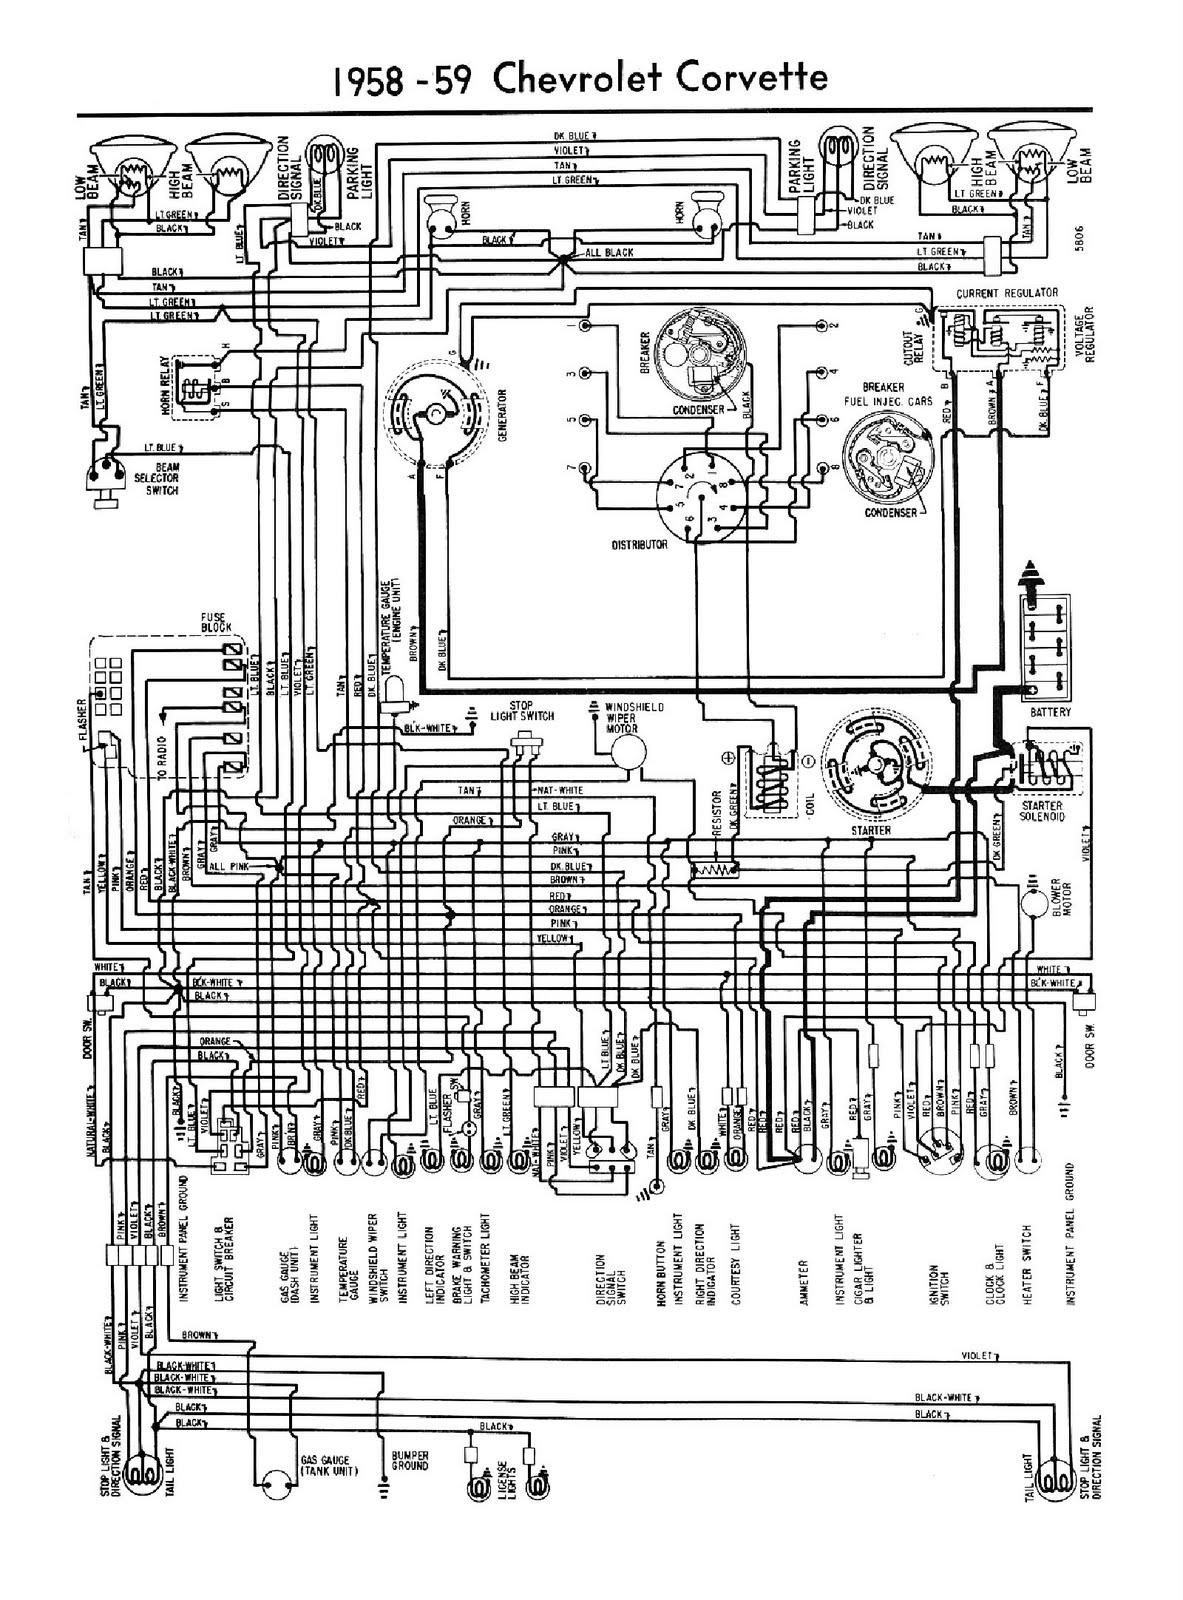 Diagram 1967 Chevy Corvette Wiring Diagram Full Version Hd Quality Wiring Diagram Odiagramifp Festeebraiche It